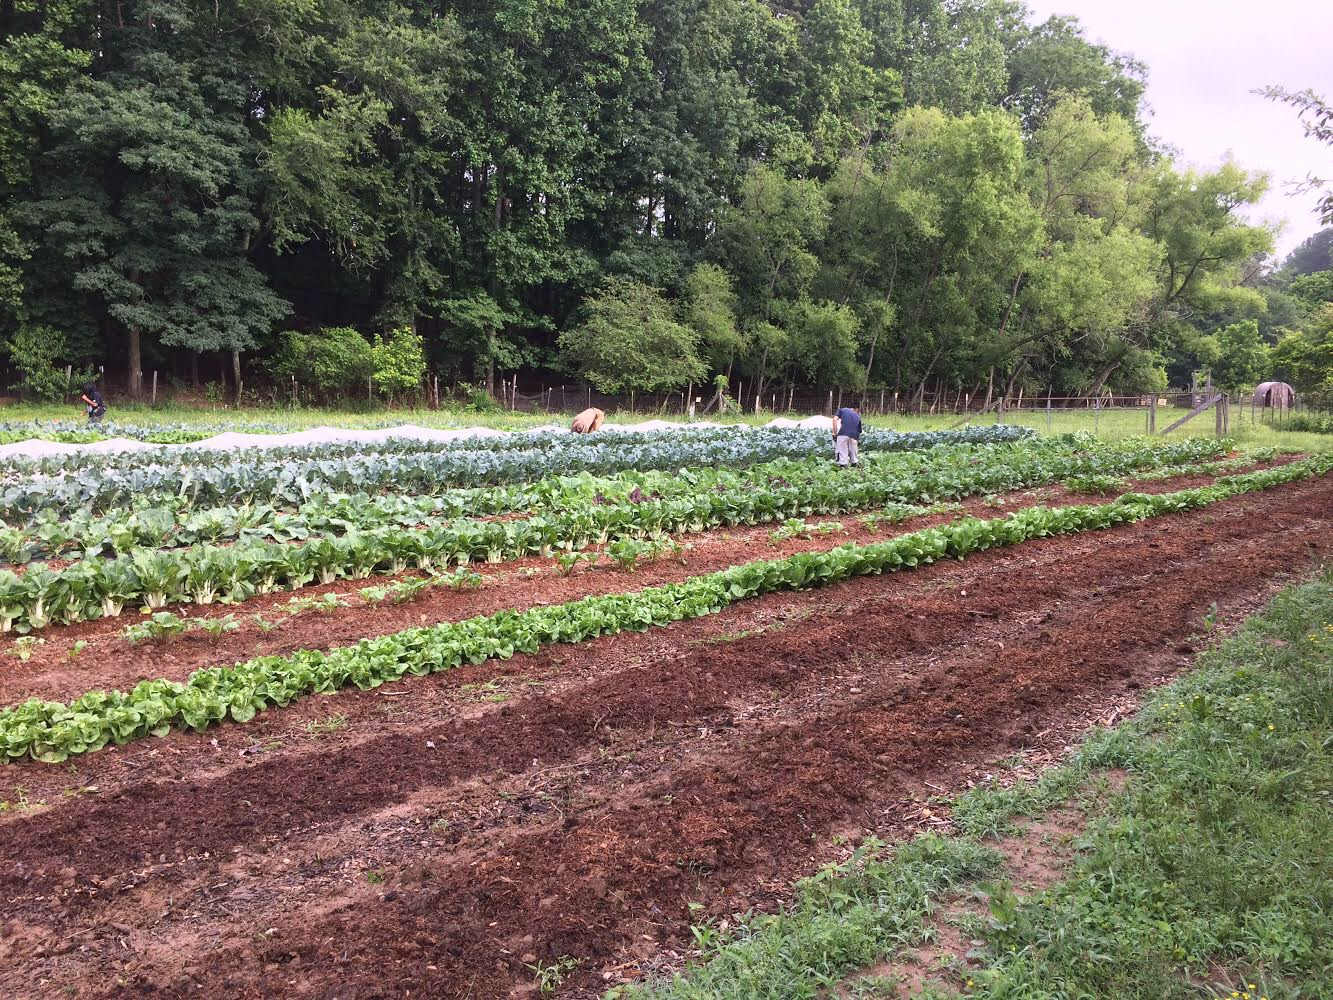 Cane Creek Farm